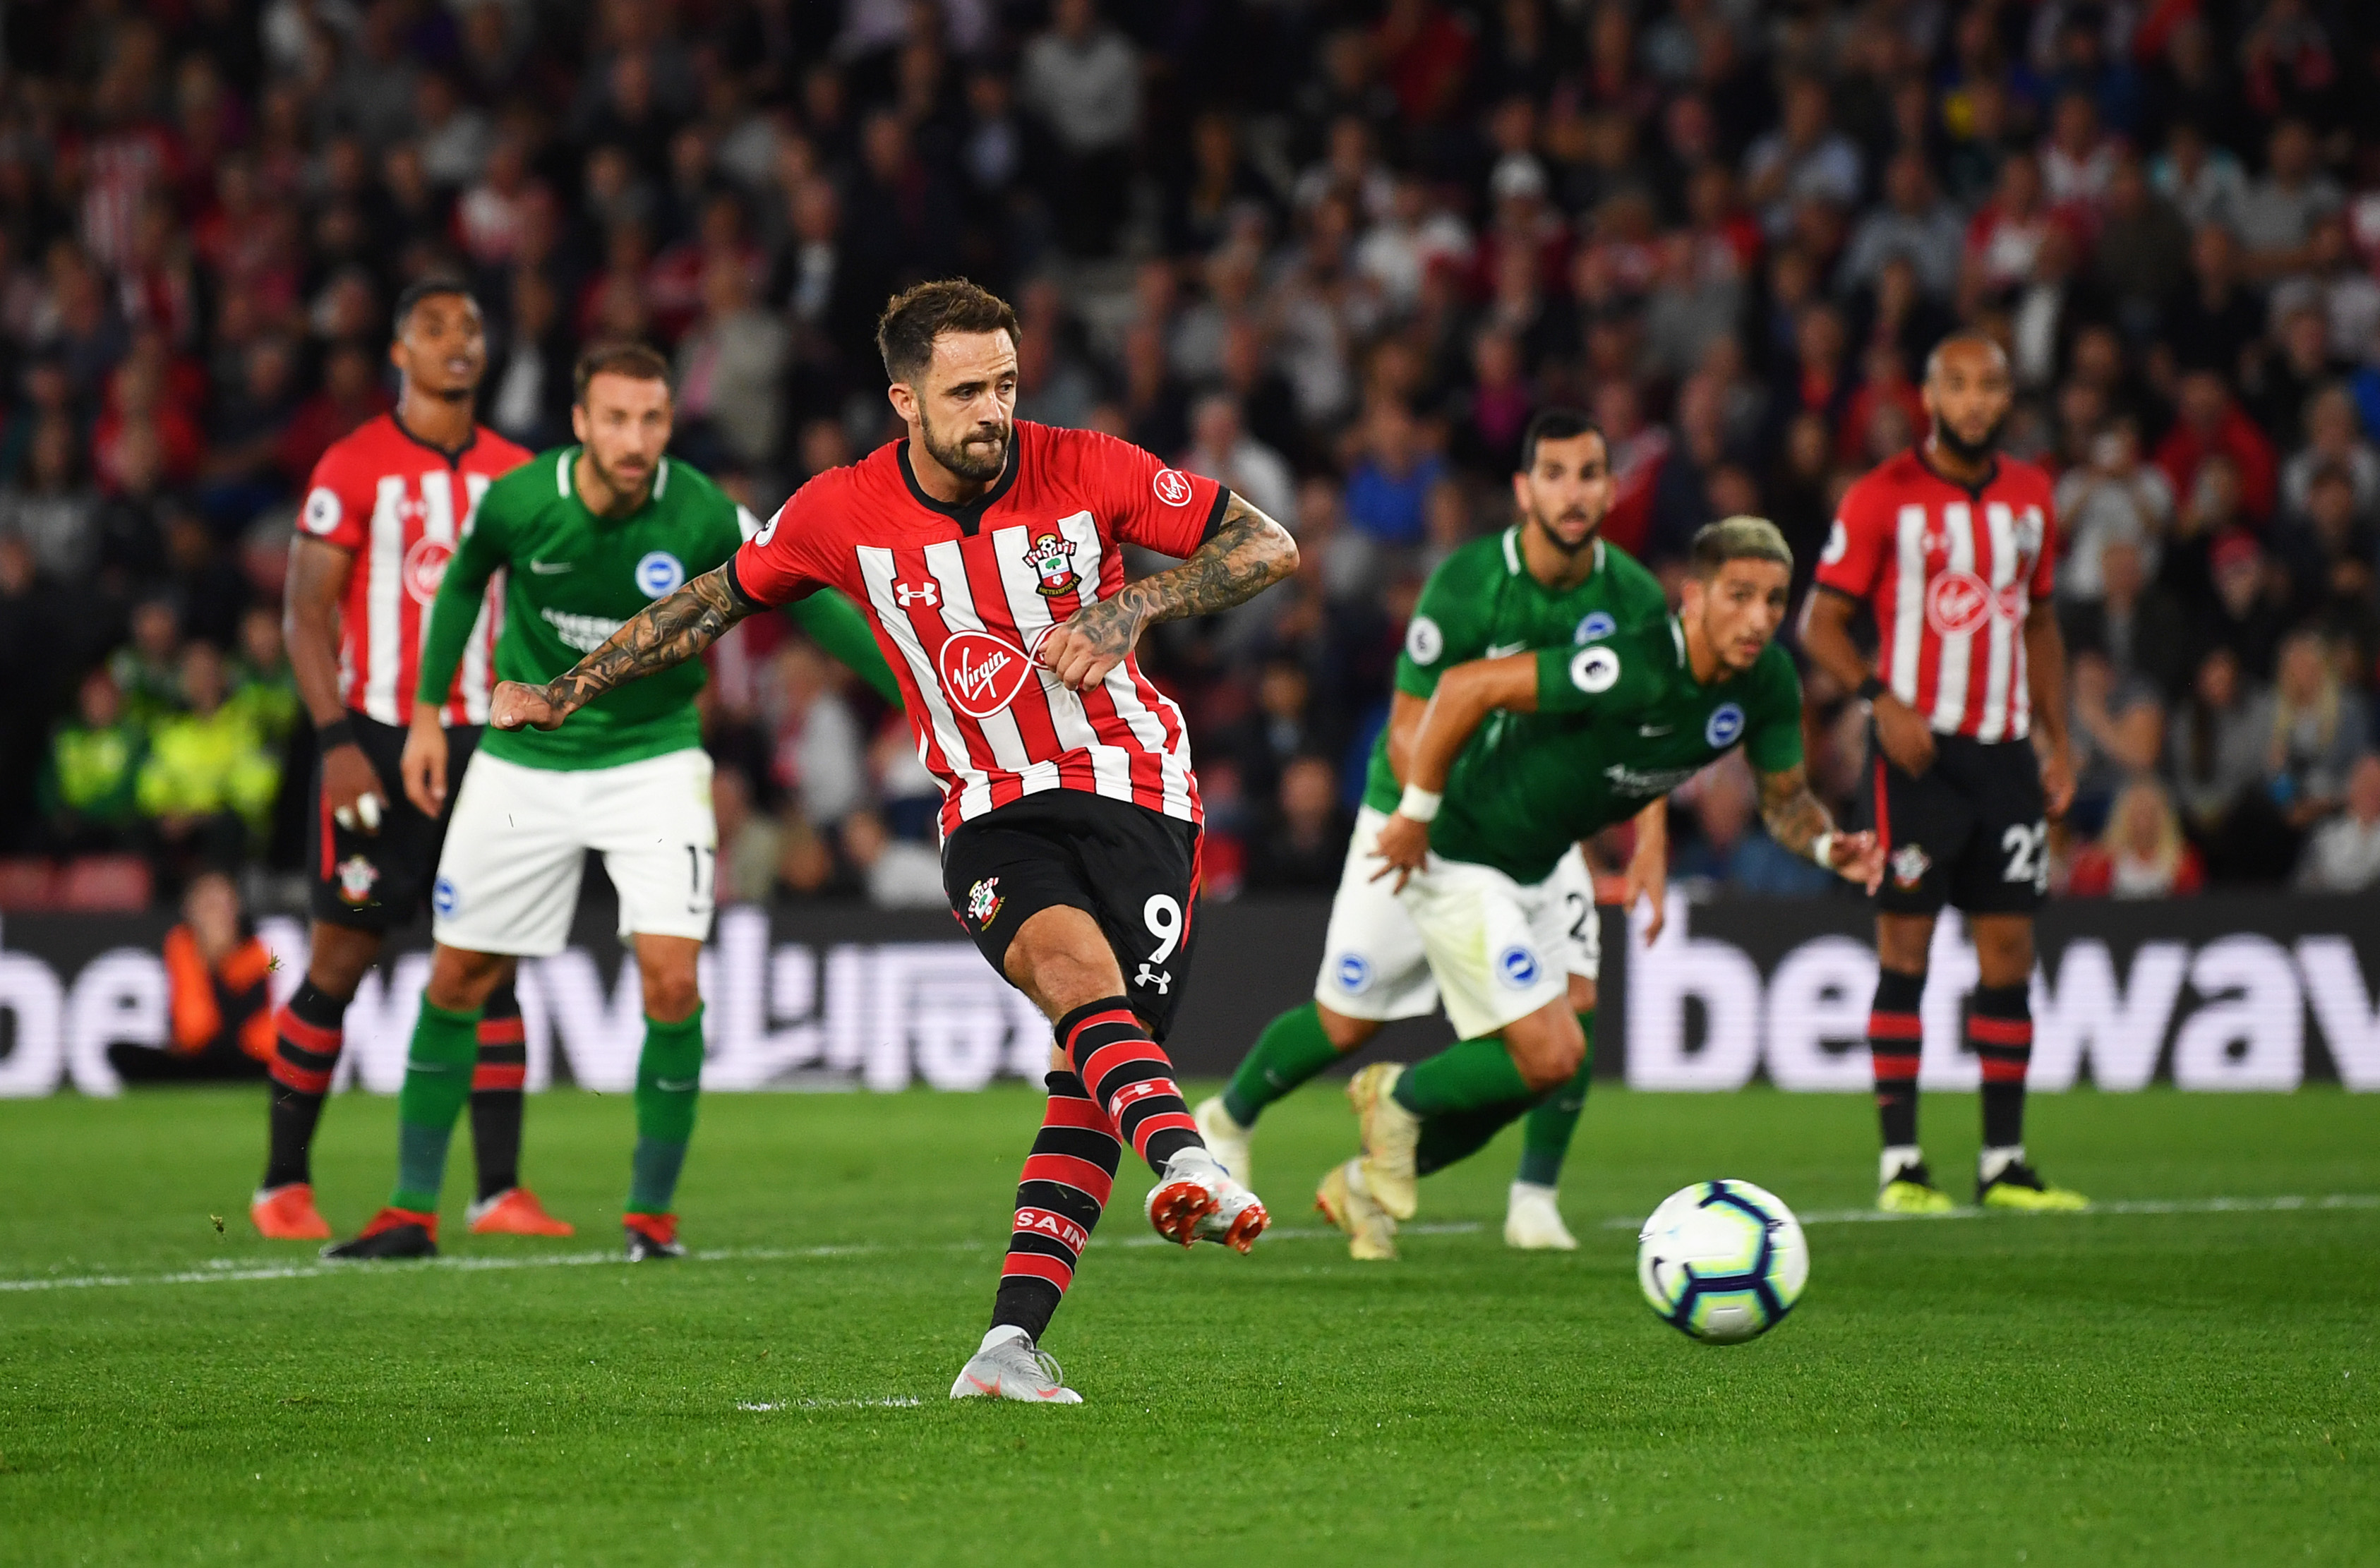 Southampton to use augmented reality to sell pitchside advertising space